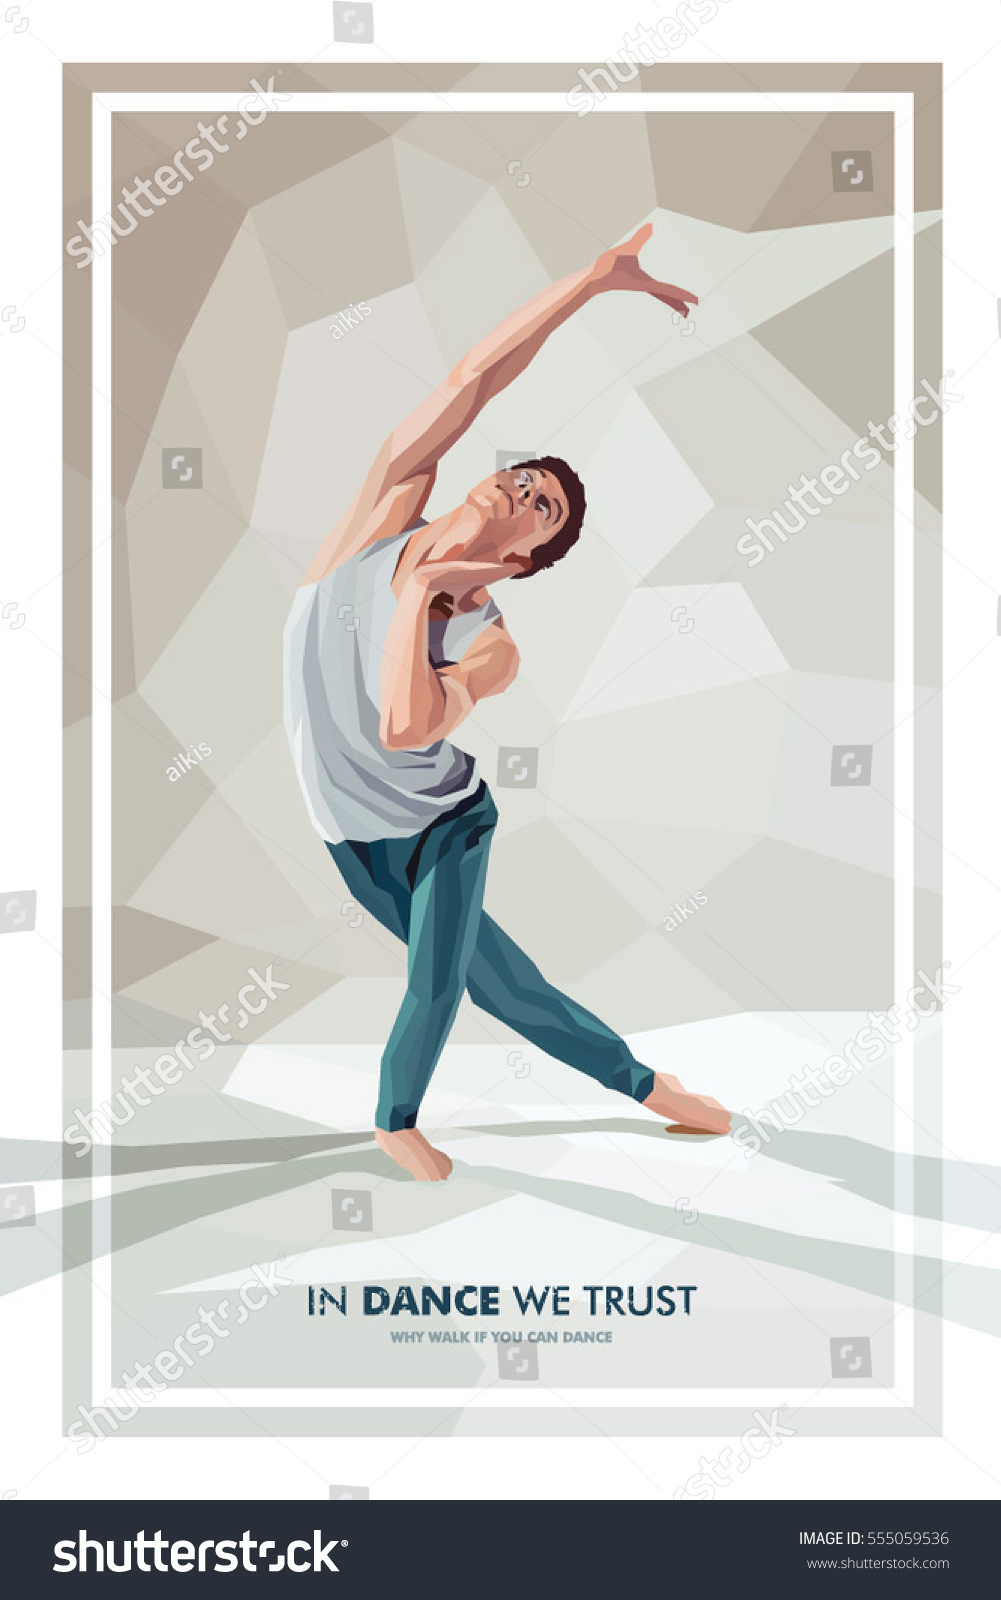 Barefoot Contemporary Dancer Dance Polygonal Poster With Lettering In We Trust